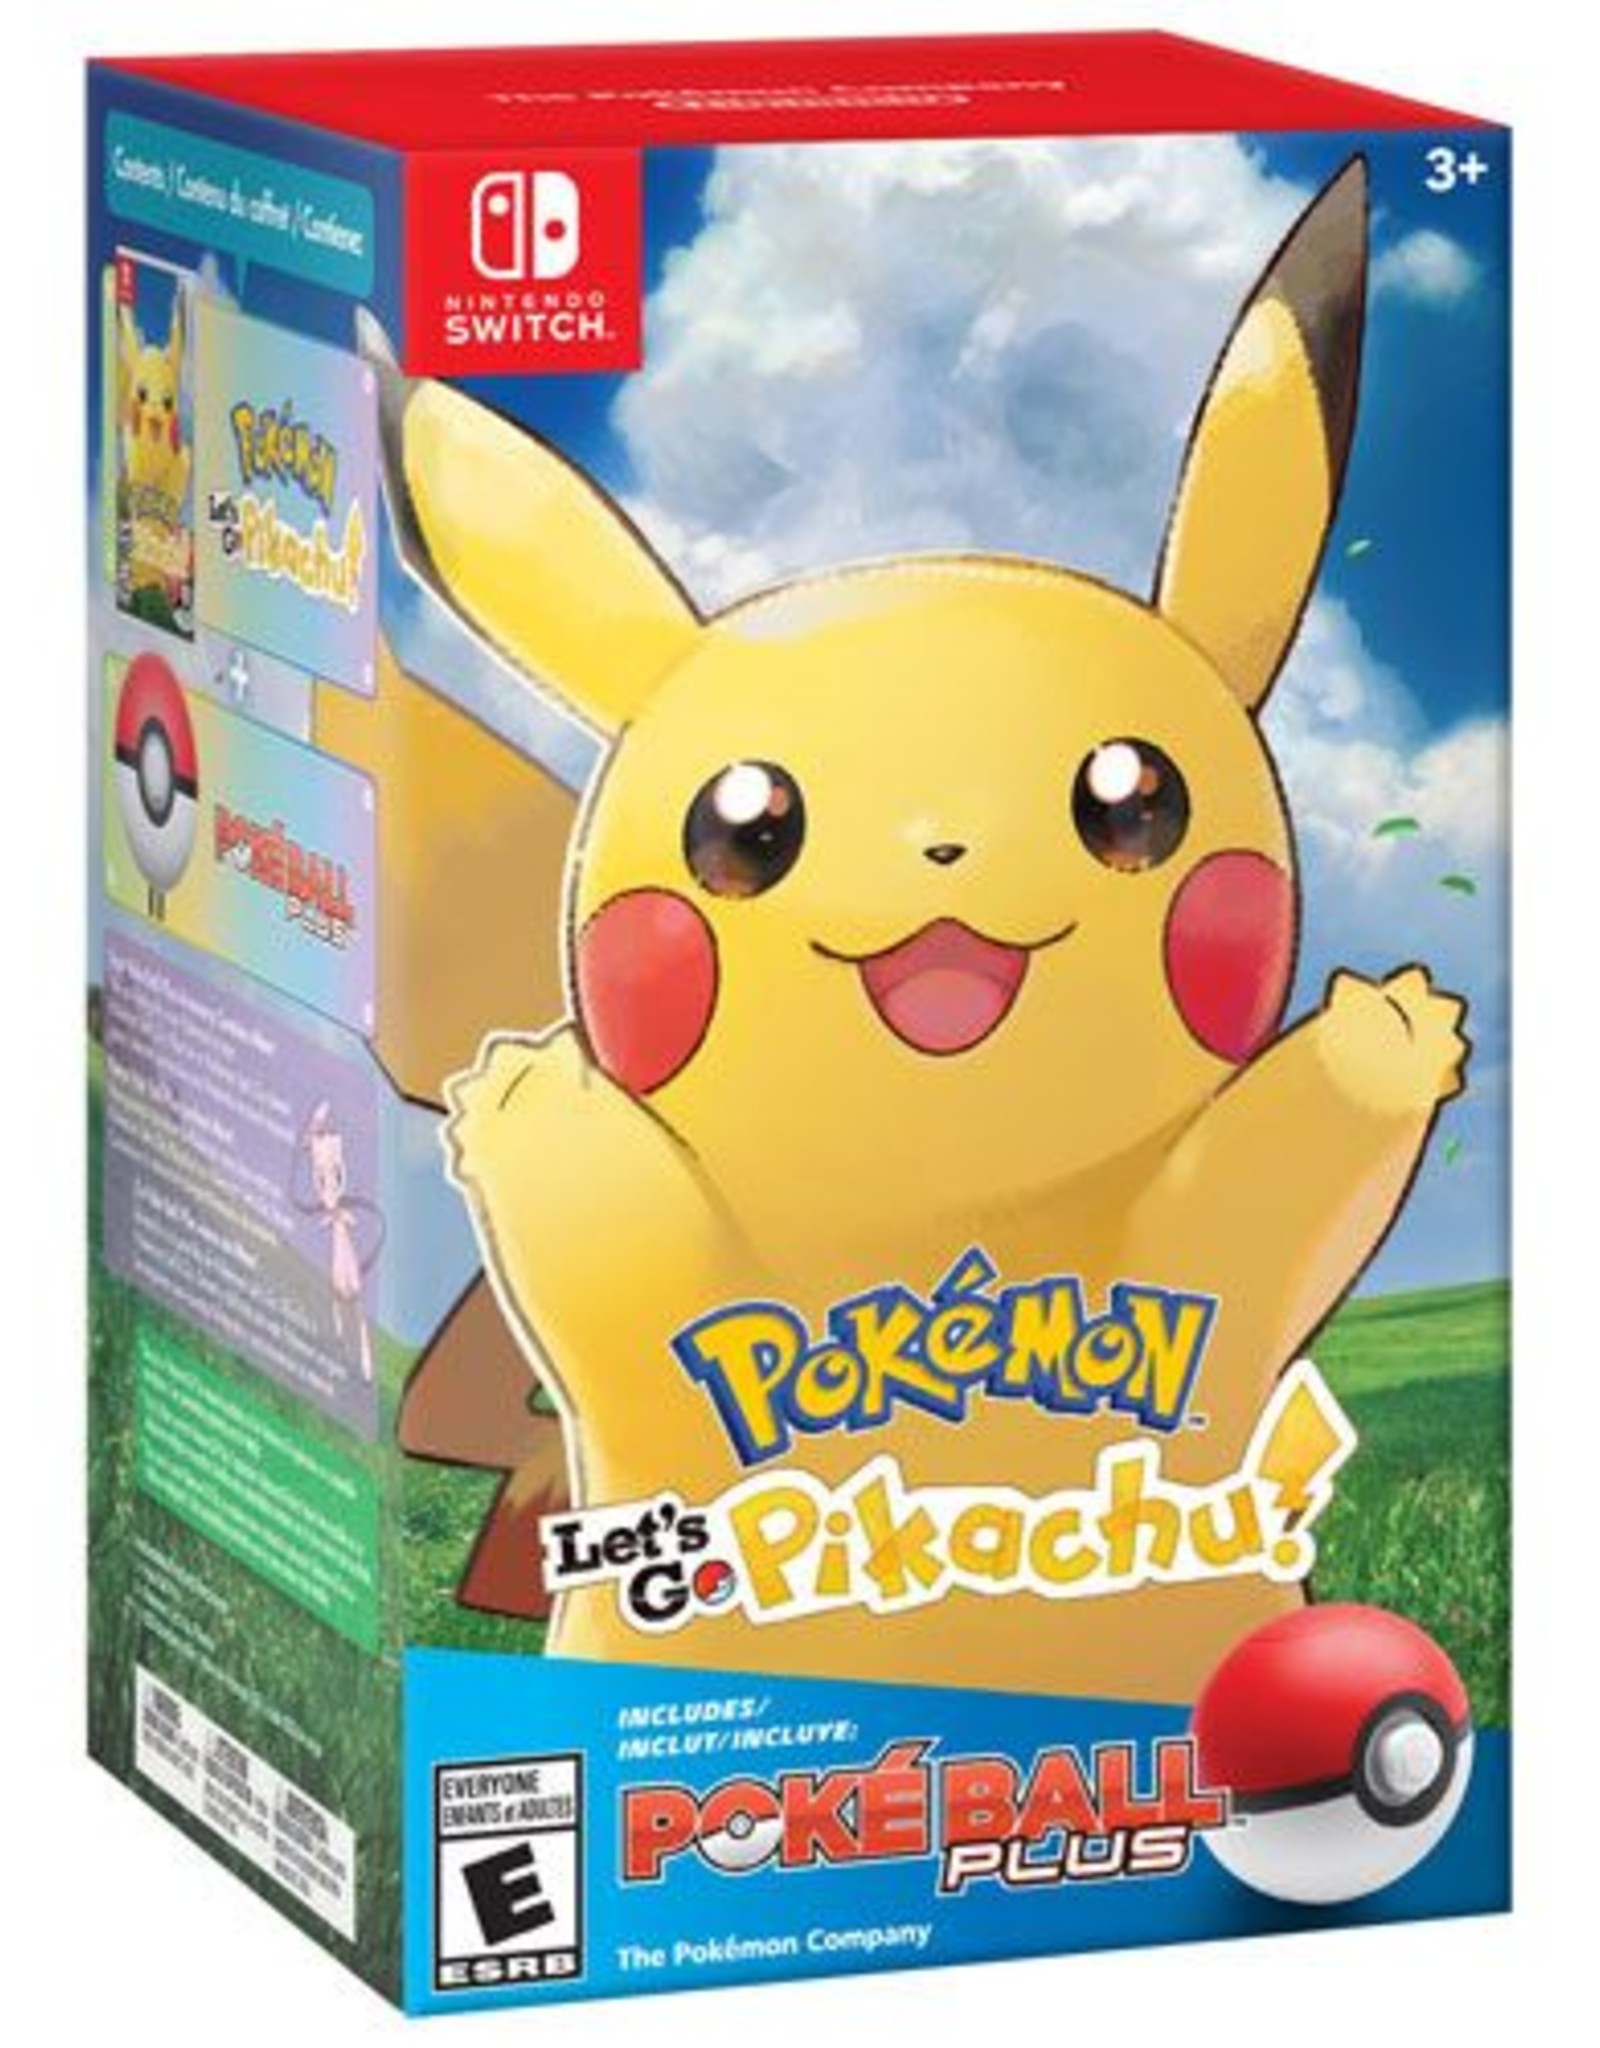 Pokemon Let's Go Pikachu Poke Ball Plus Bundle - SWITCH NEW